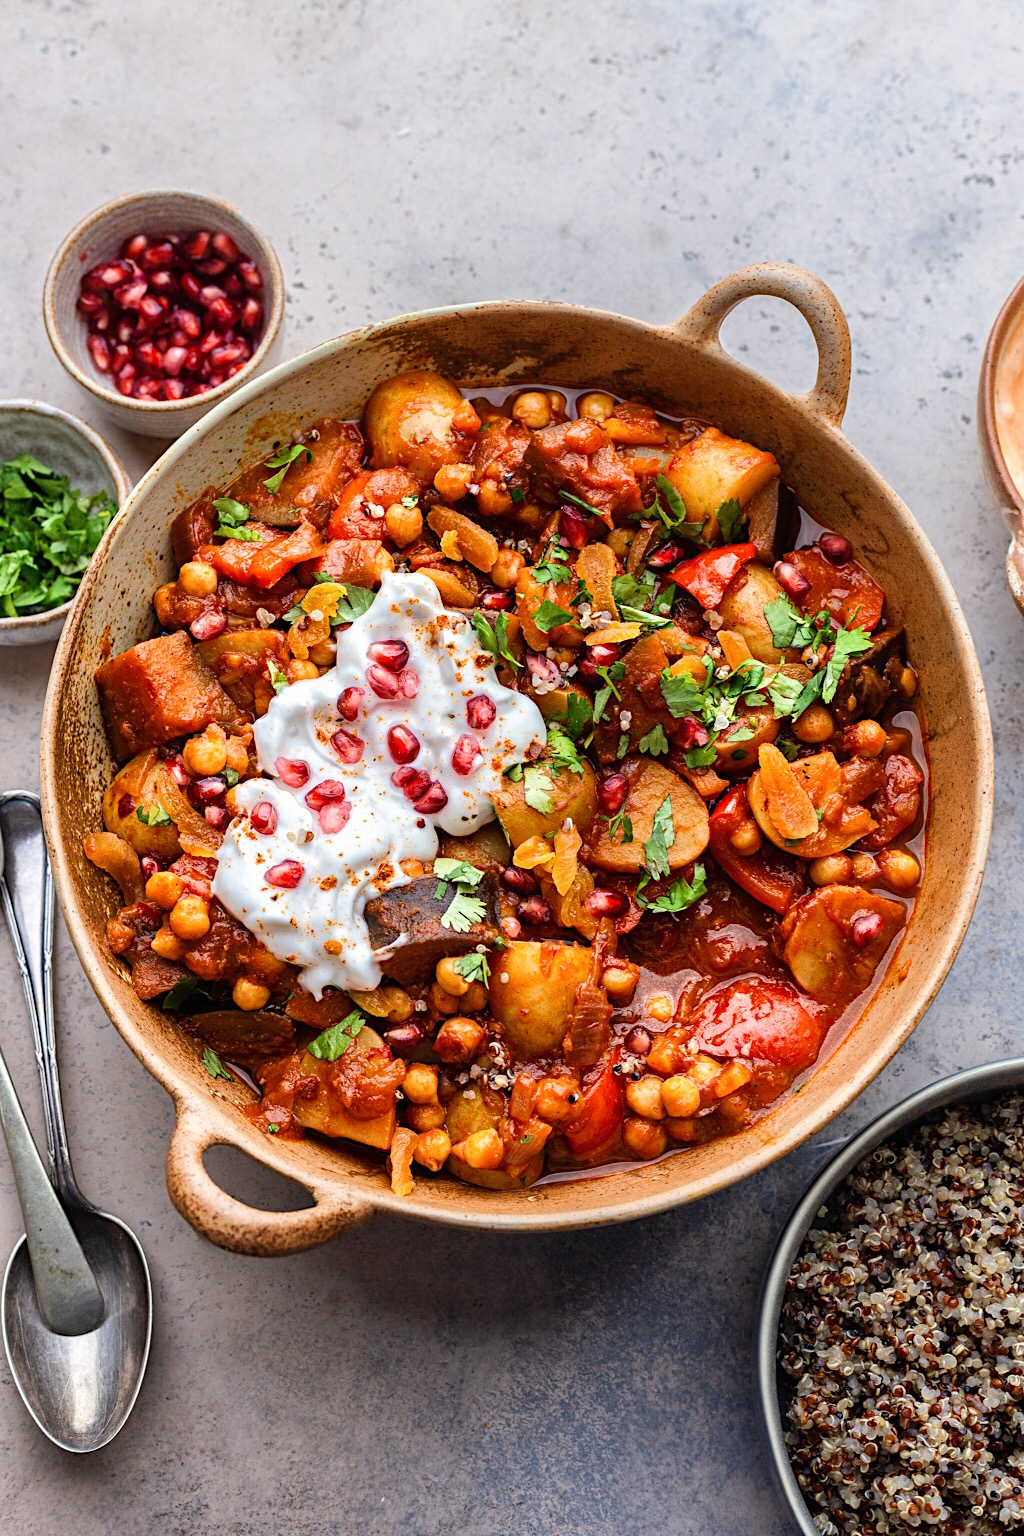 Moroccan Vegetable and Chickpea Stew #moroccan #vegan #dairyfree #stew #onepot #recipe